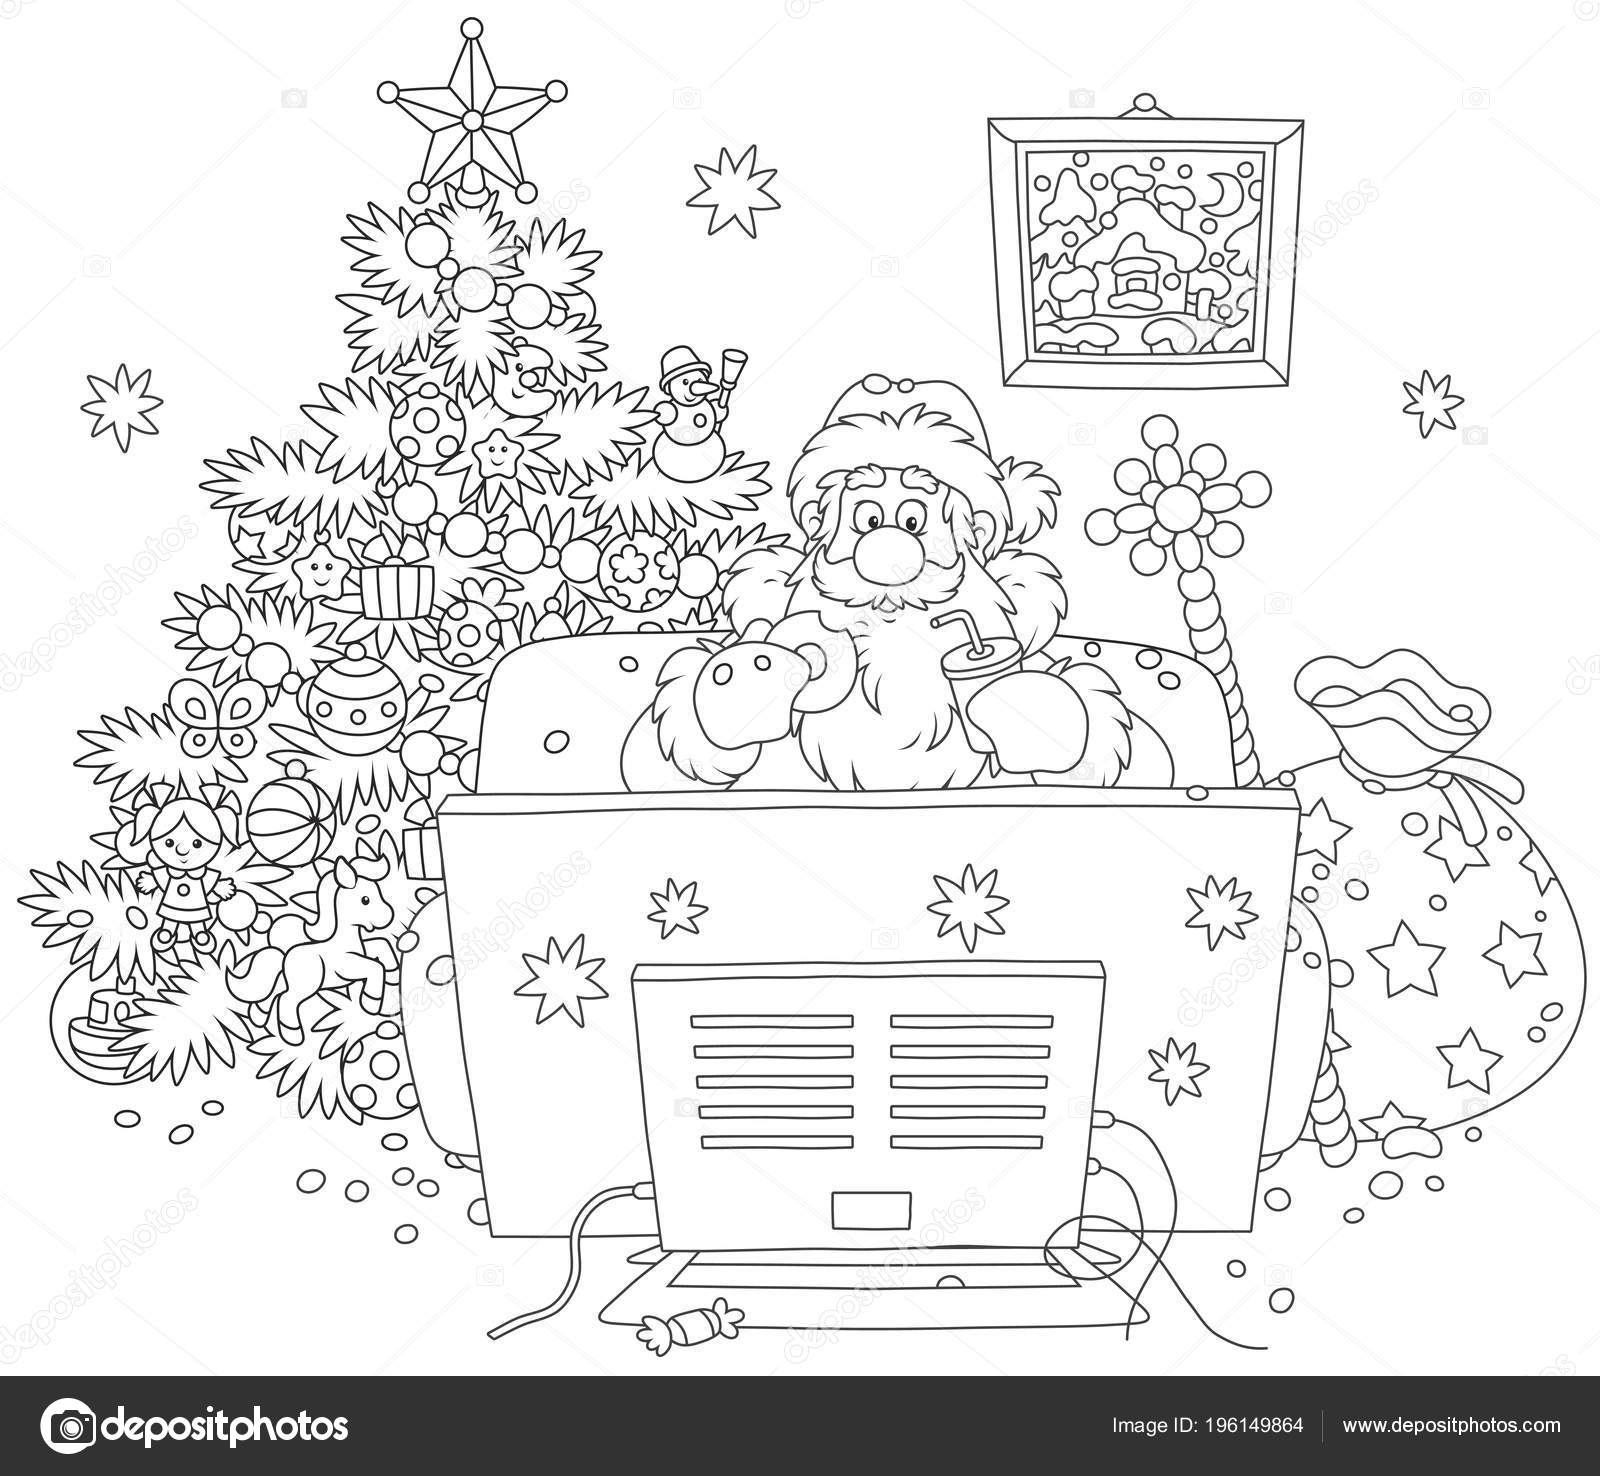 santa claus sitting on his sofa and watching tv near a decorated christmas tree and a big bag of gifts black and white vector illustration in a cartoon